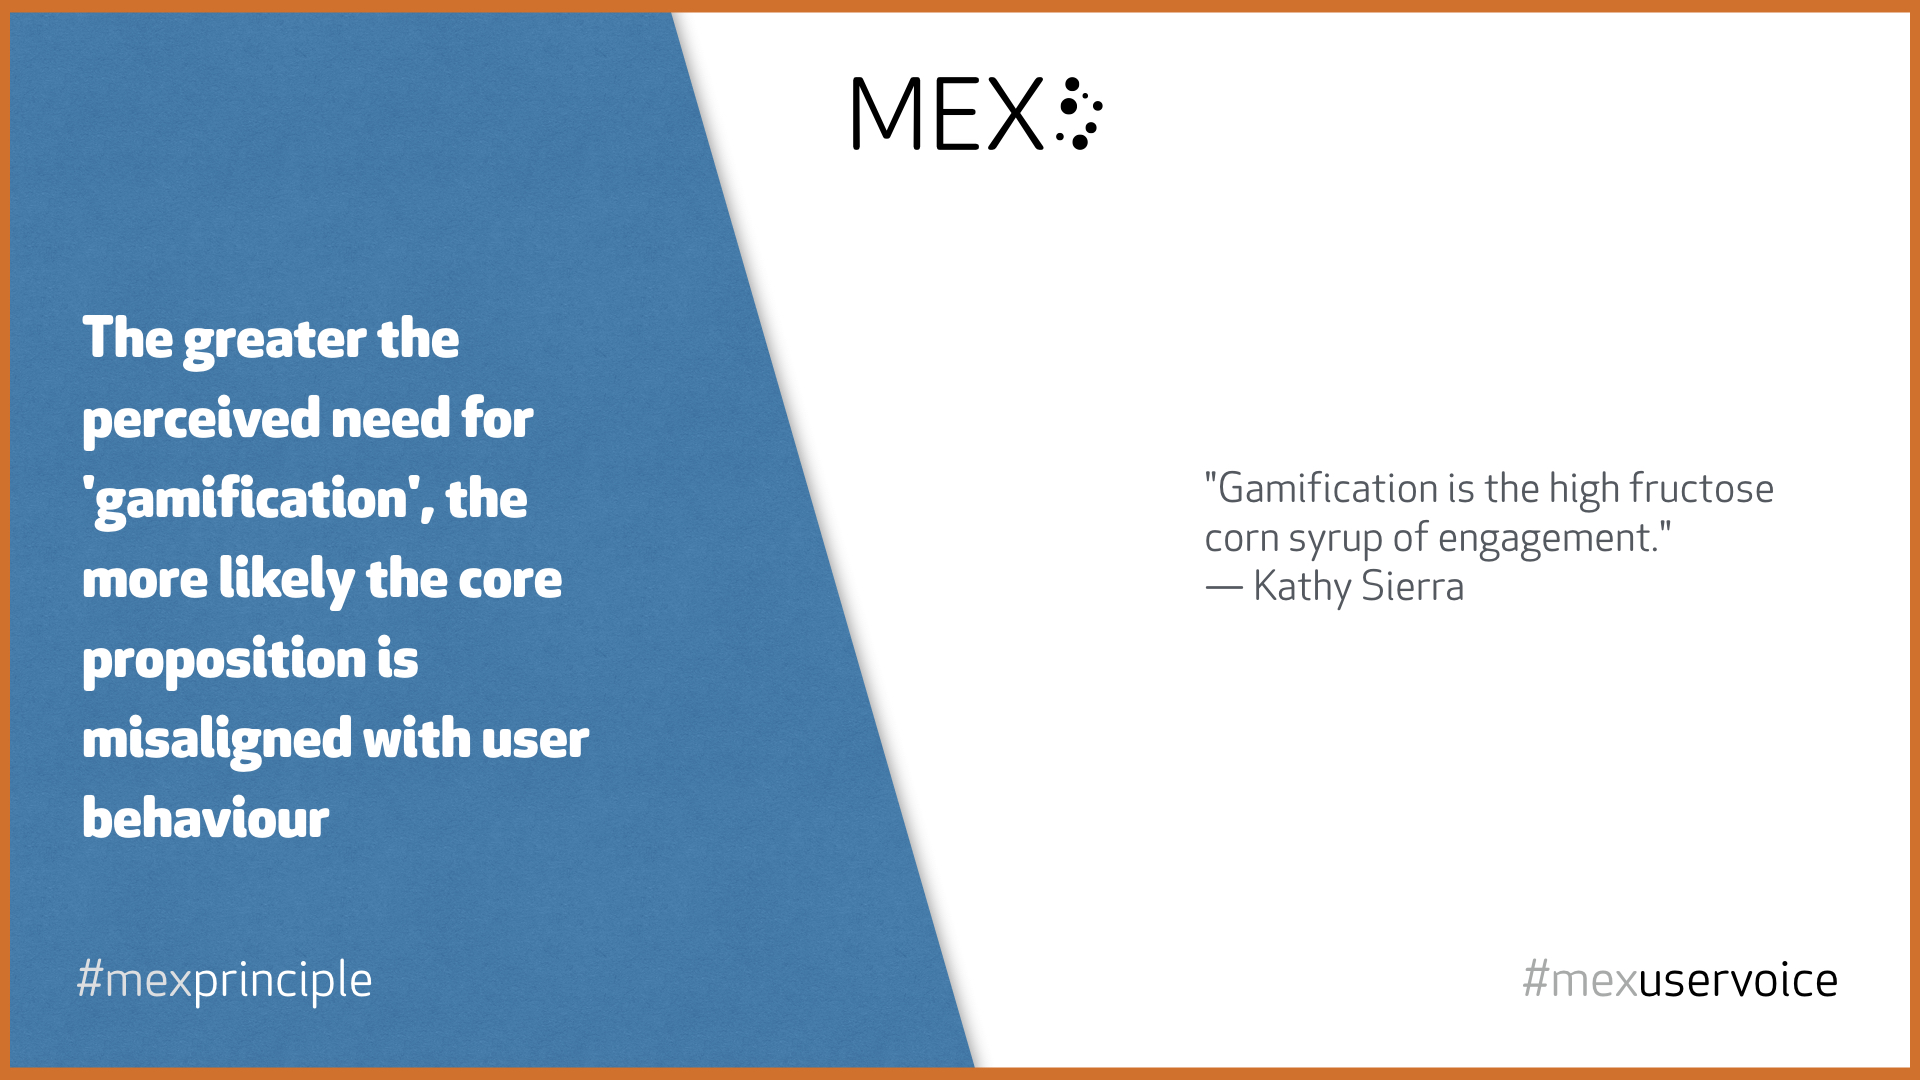 The greater the perceived need for 'gamification', the more likely the core proposition is misaligned with user behaviour